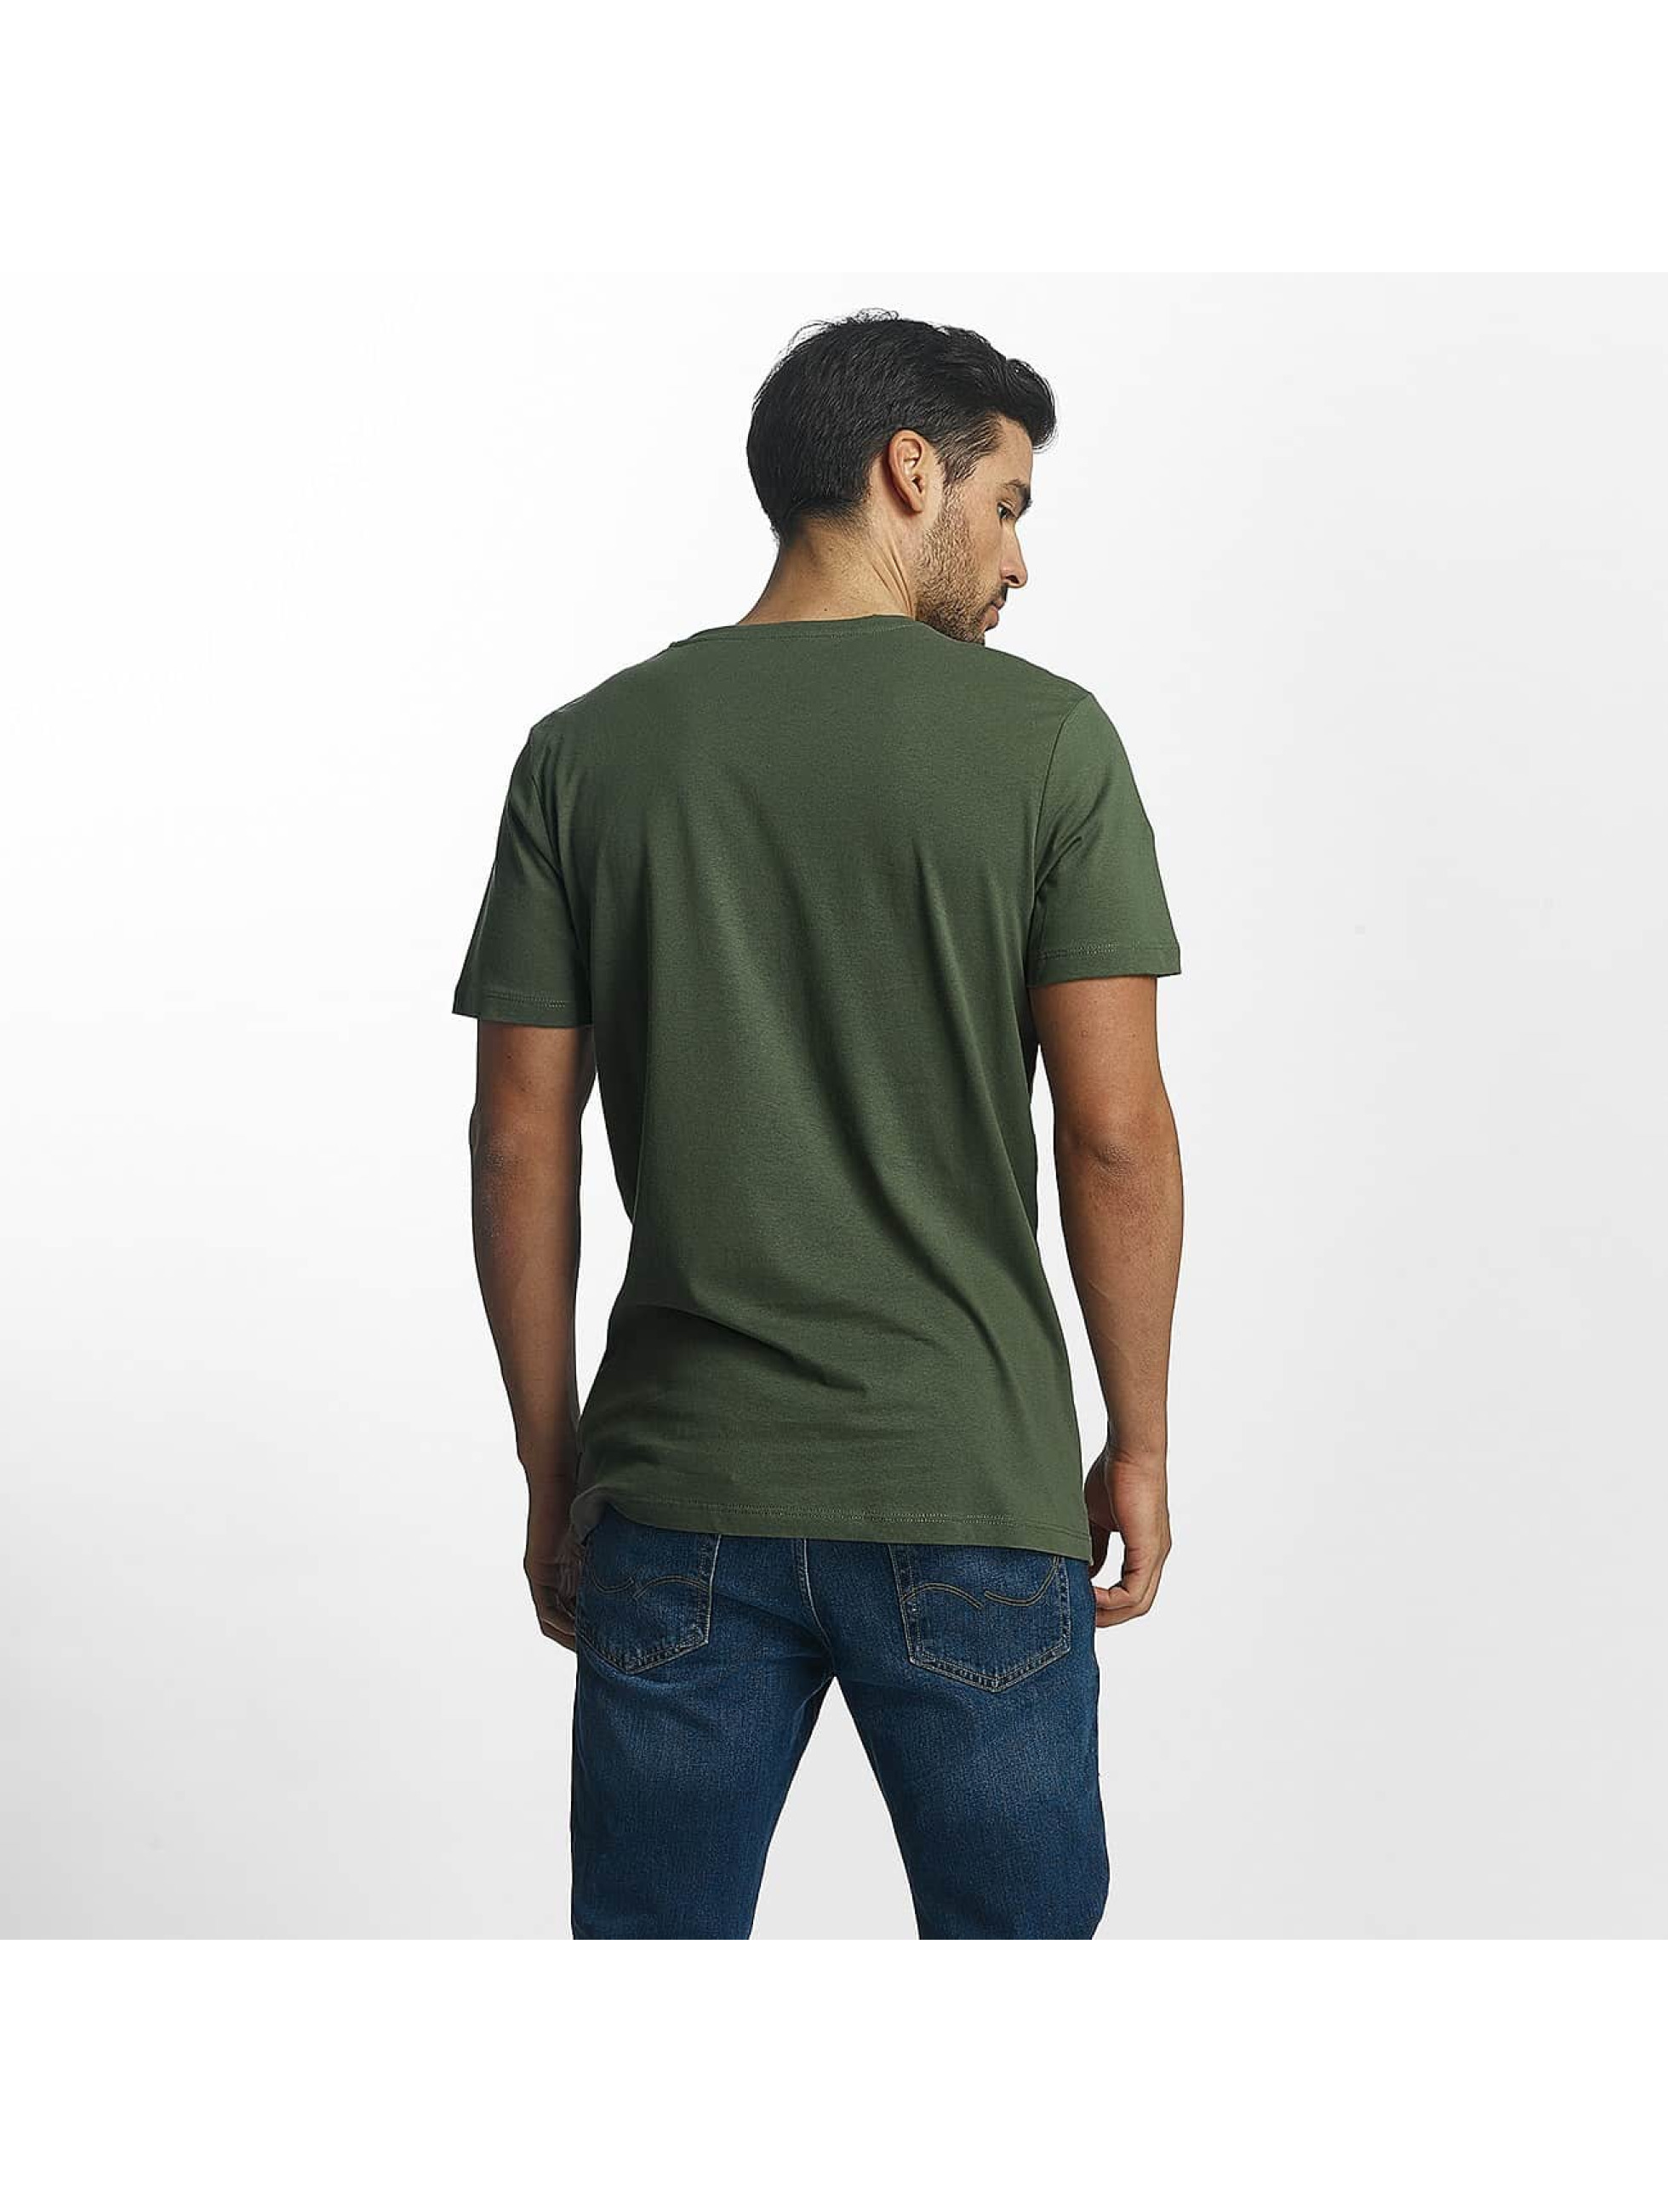 Jack & Jones T-Shirt Scully vert